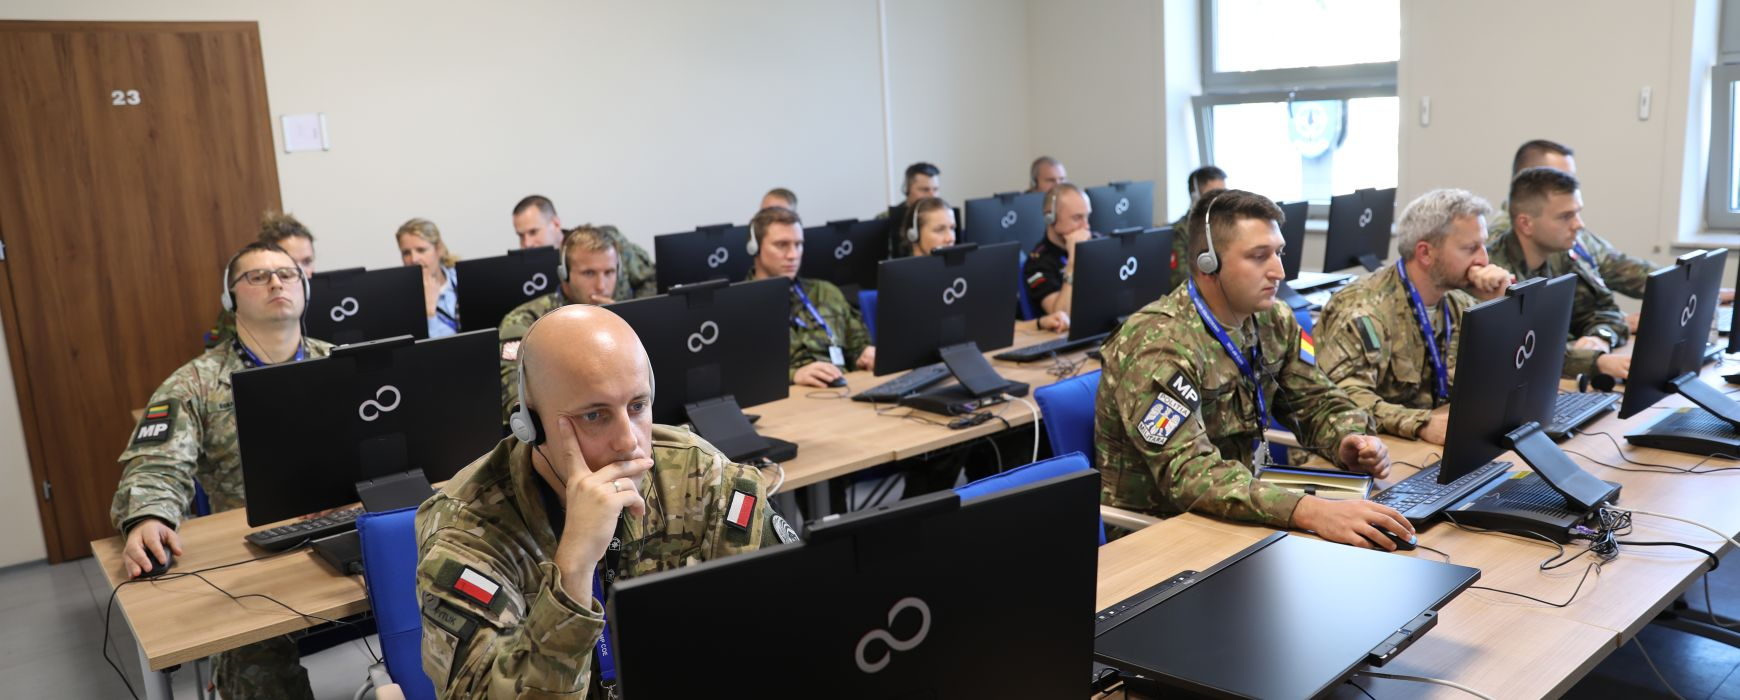 NATO Military Police Junior Officer Course (MPJOC20)